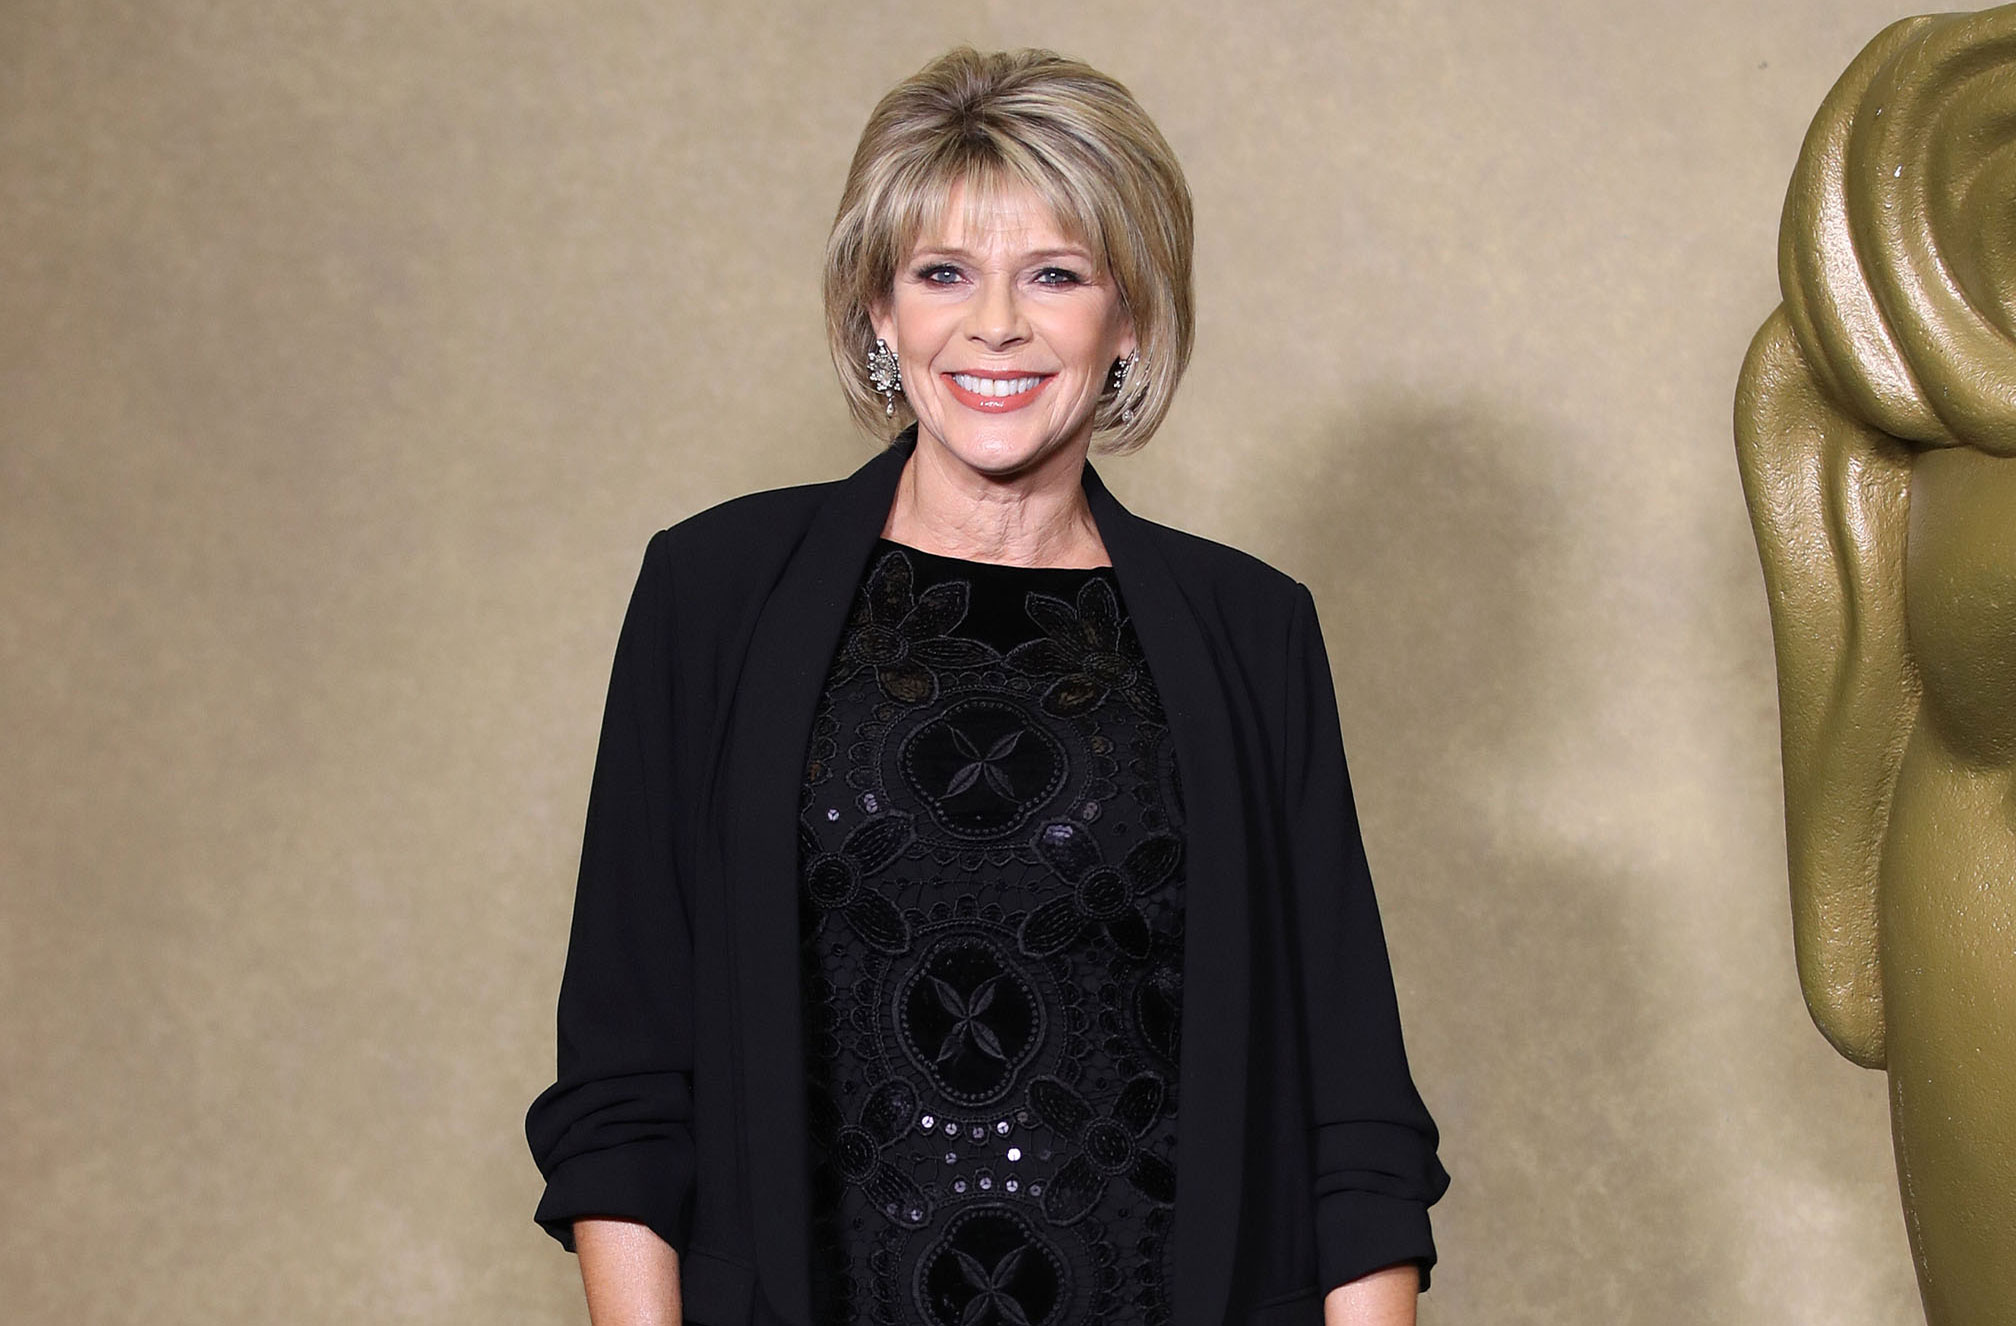 Fans can't believe how young Ruth Langsford's 87-year-old mum looks in rare new video